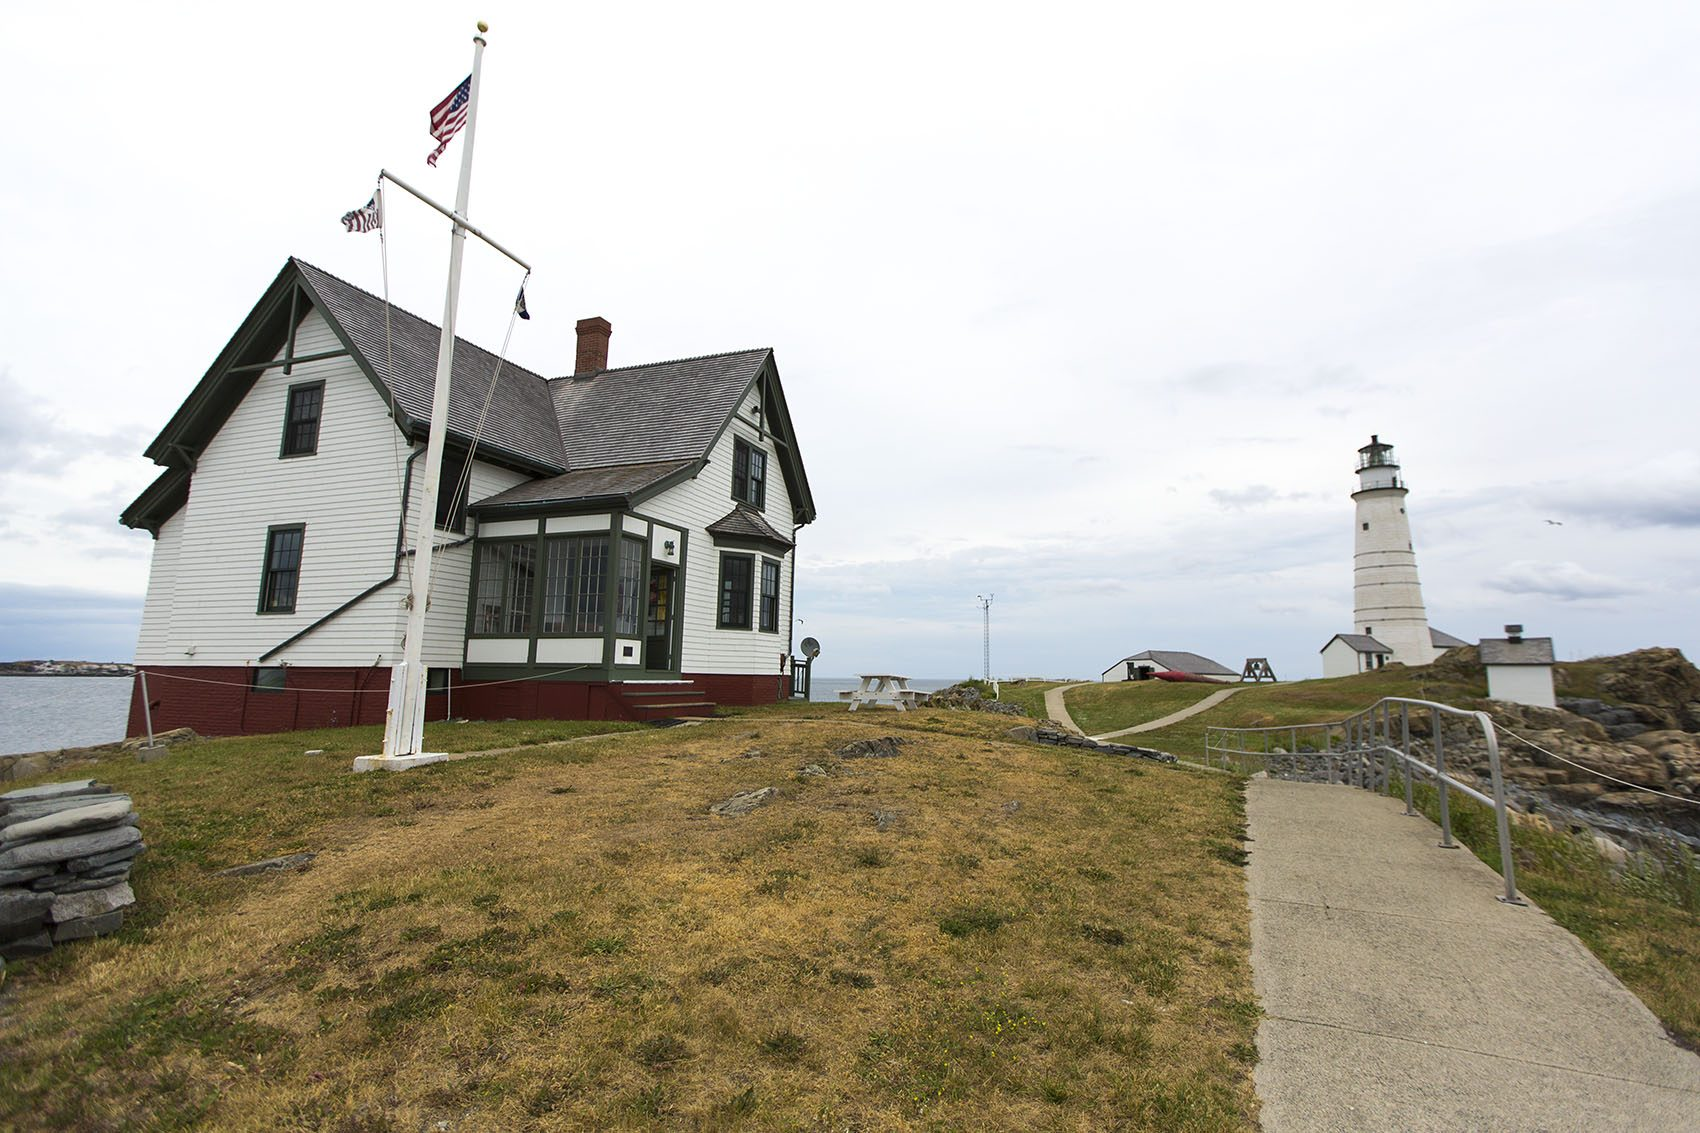 Cottage lighthouse lamp 3 colors - Boston Light Is Located On Little Brewster Island In Boston Harbor Jesse Costa